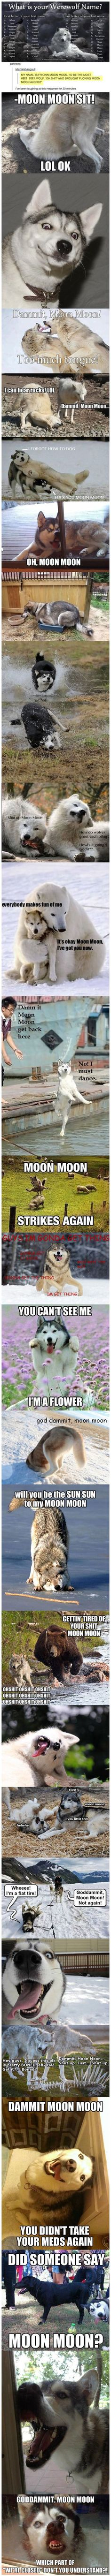 #rofl!! crying i was laughing so hard